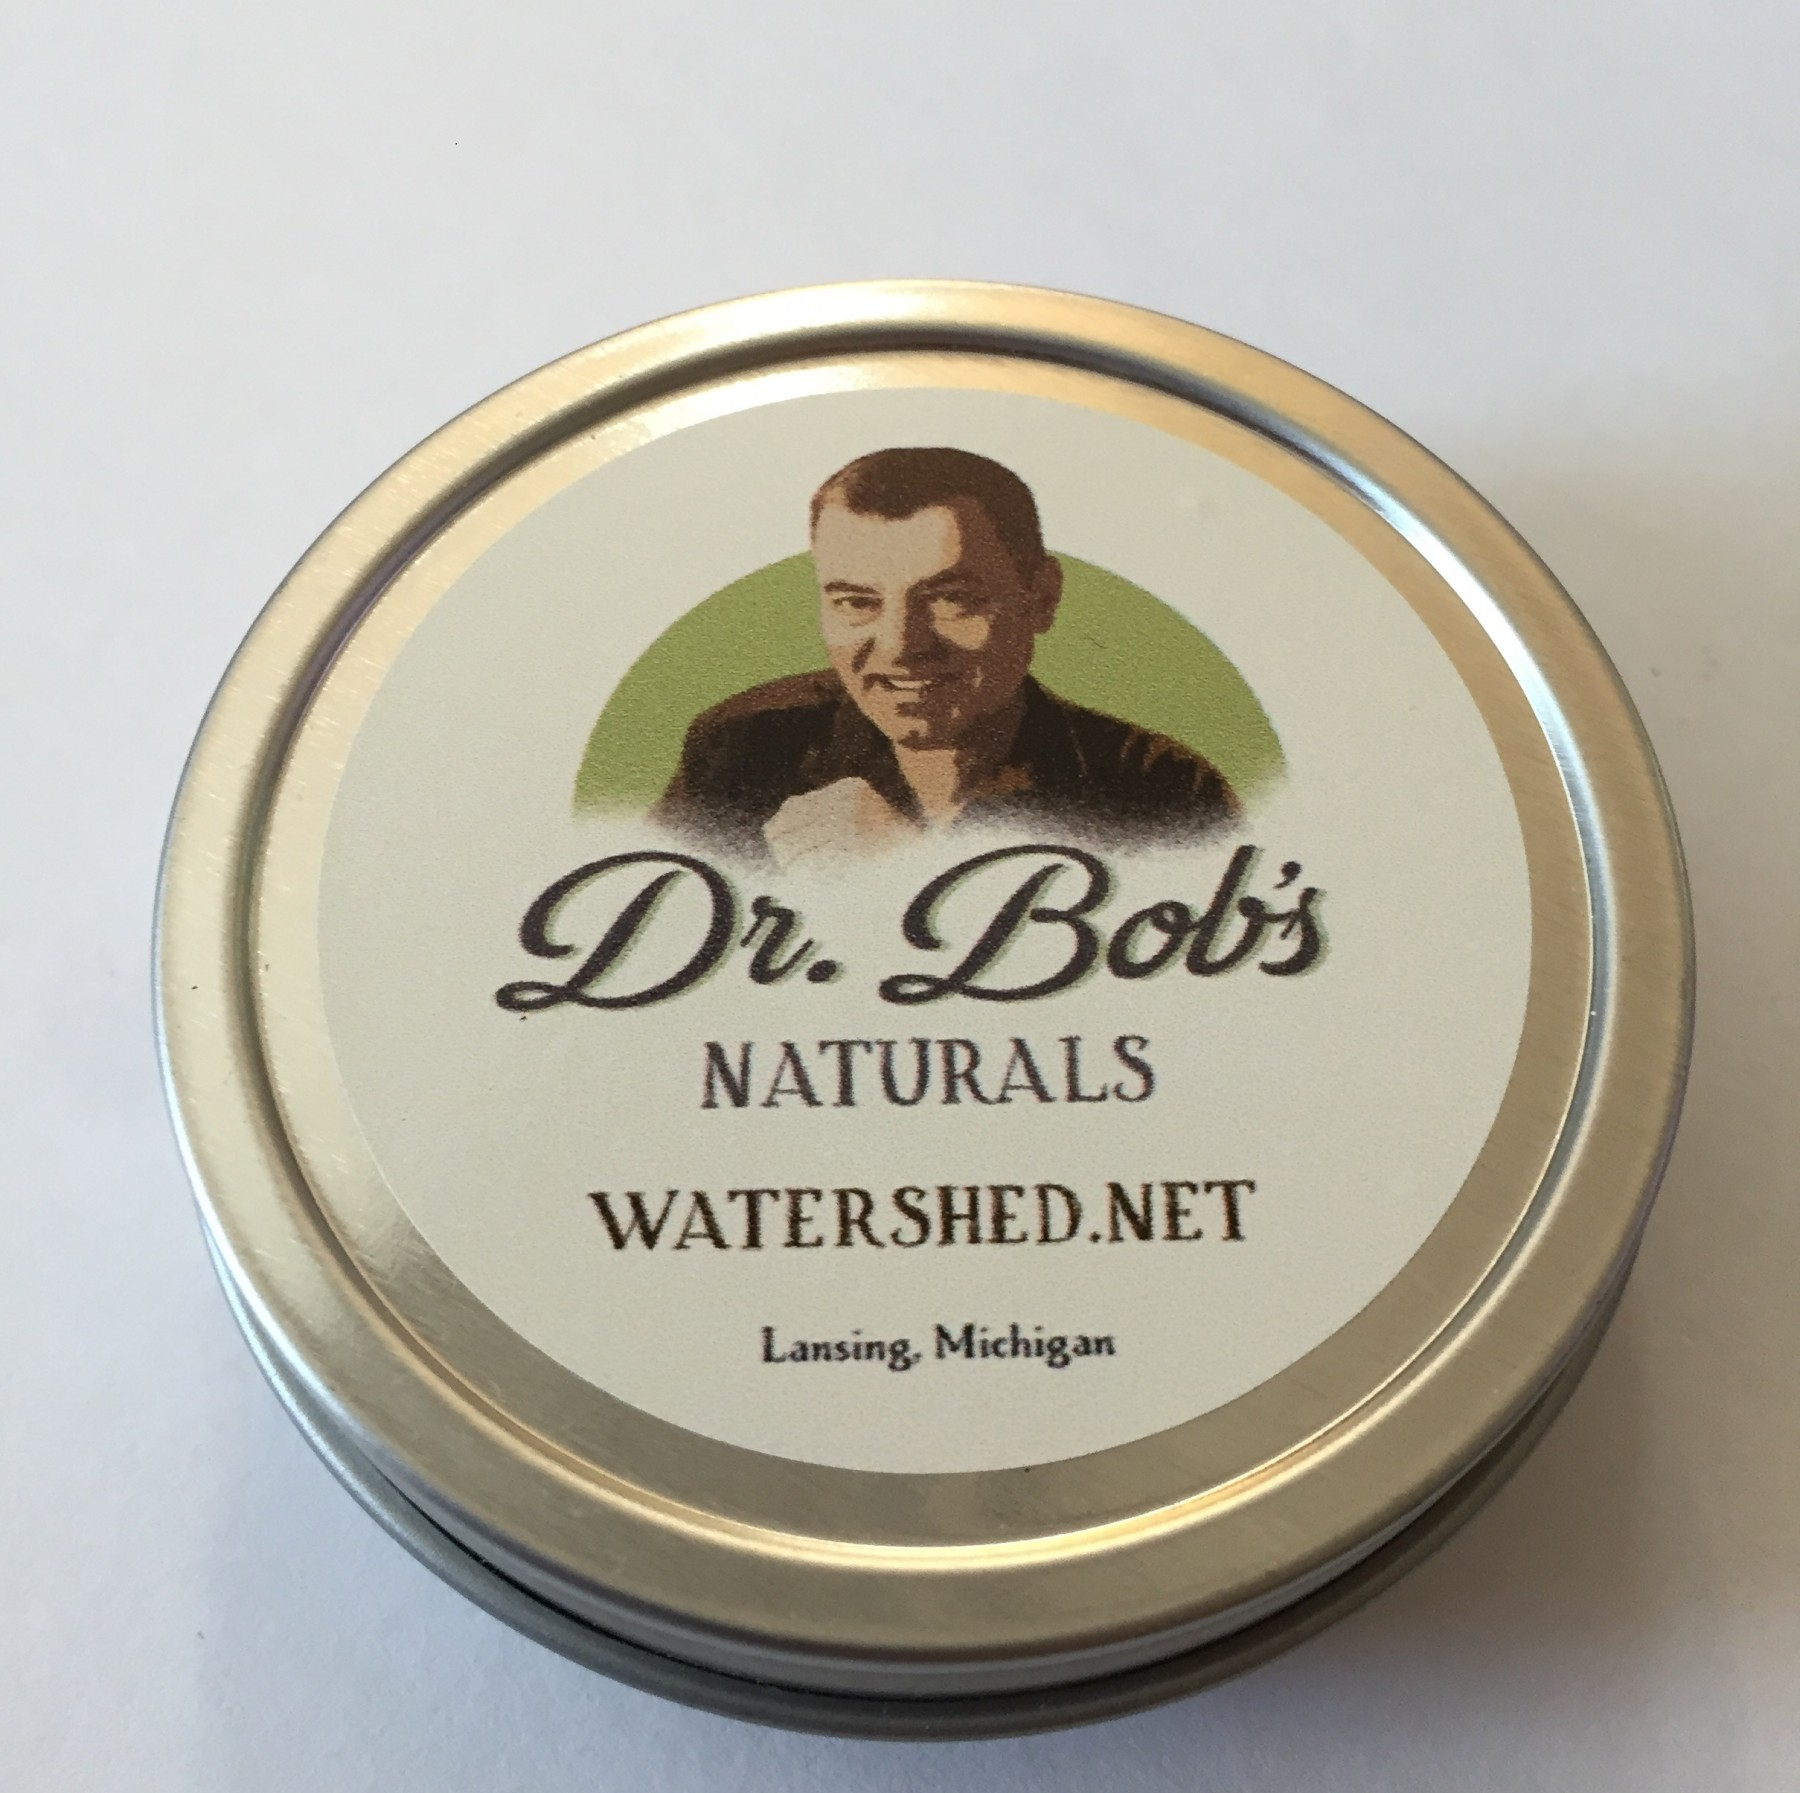 Dr. Bob's Travel Tin